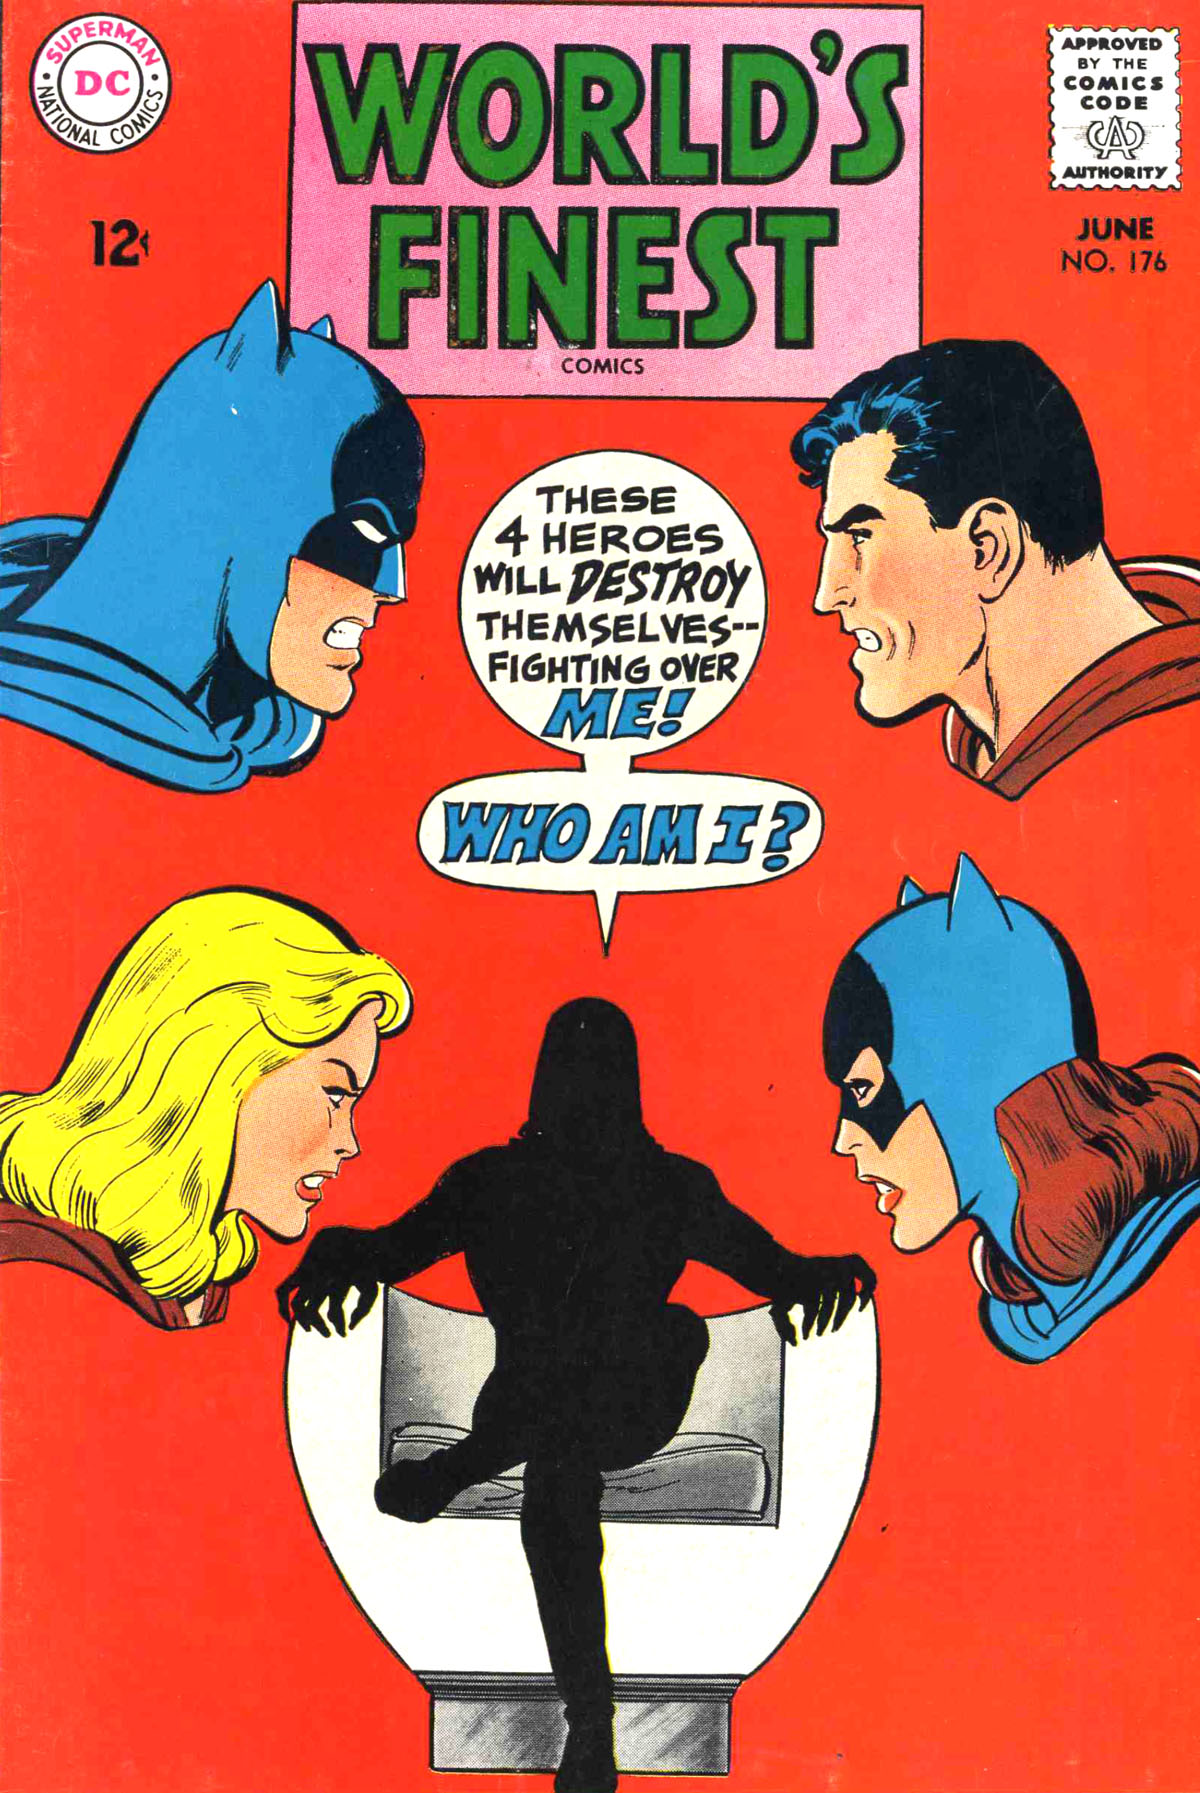 http://images.wikia.com/marvel_dc/images/e/ec/World's_Finest_176.jpg